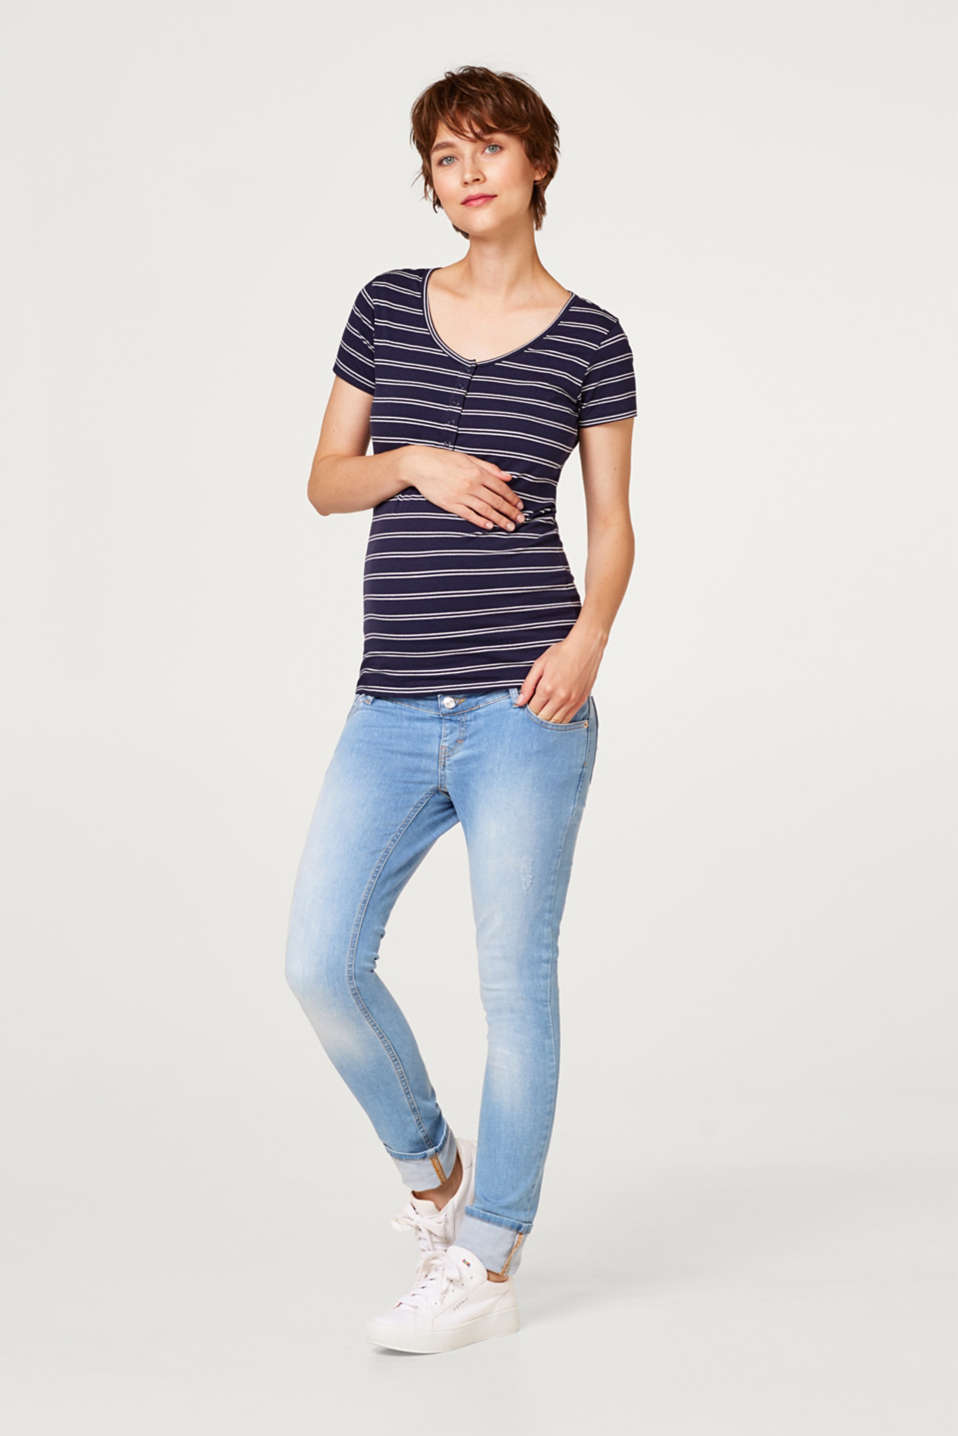 Stretch nursing T-shirt with sailor stripes